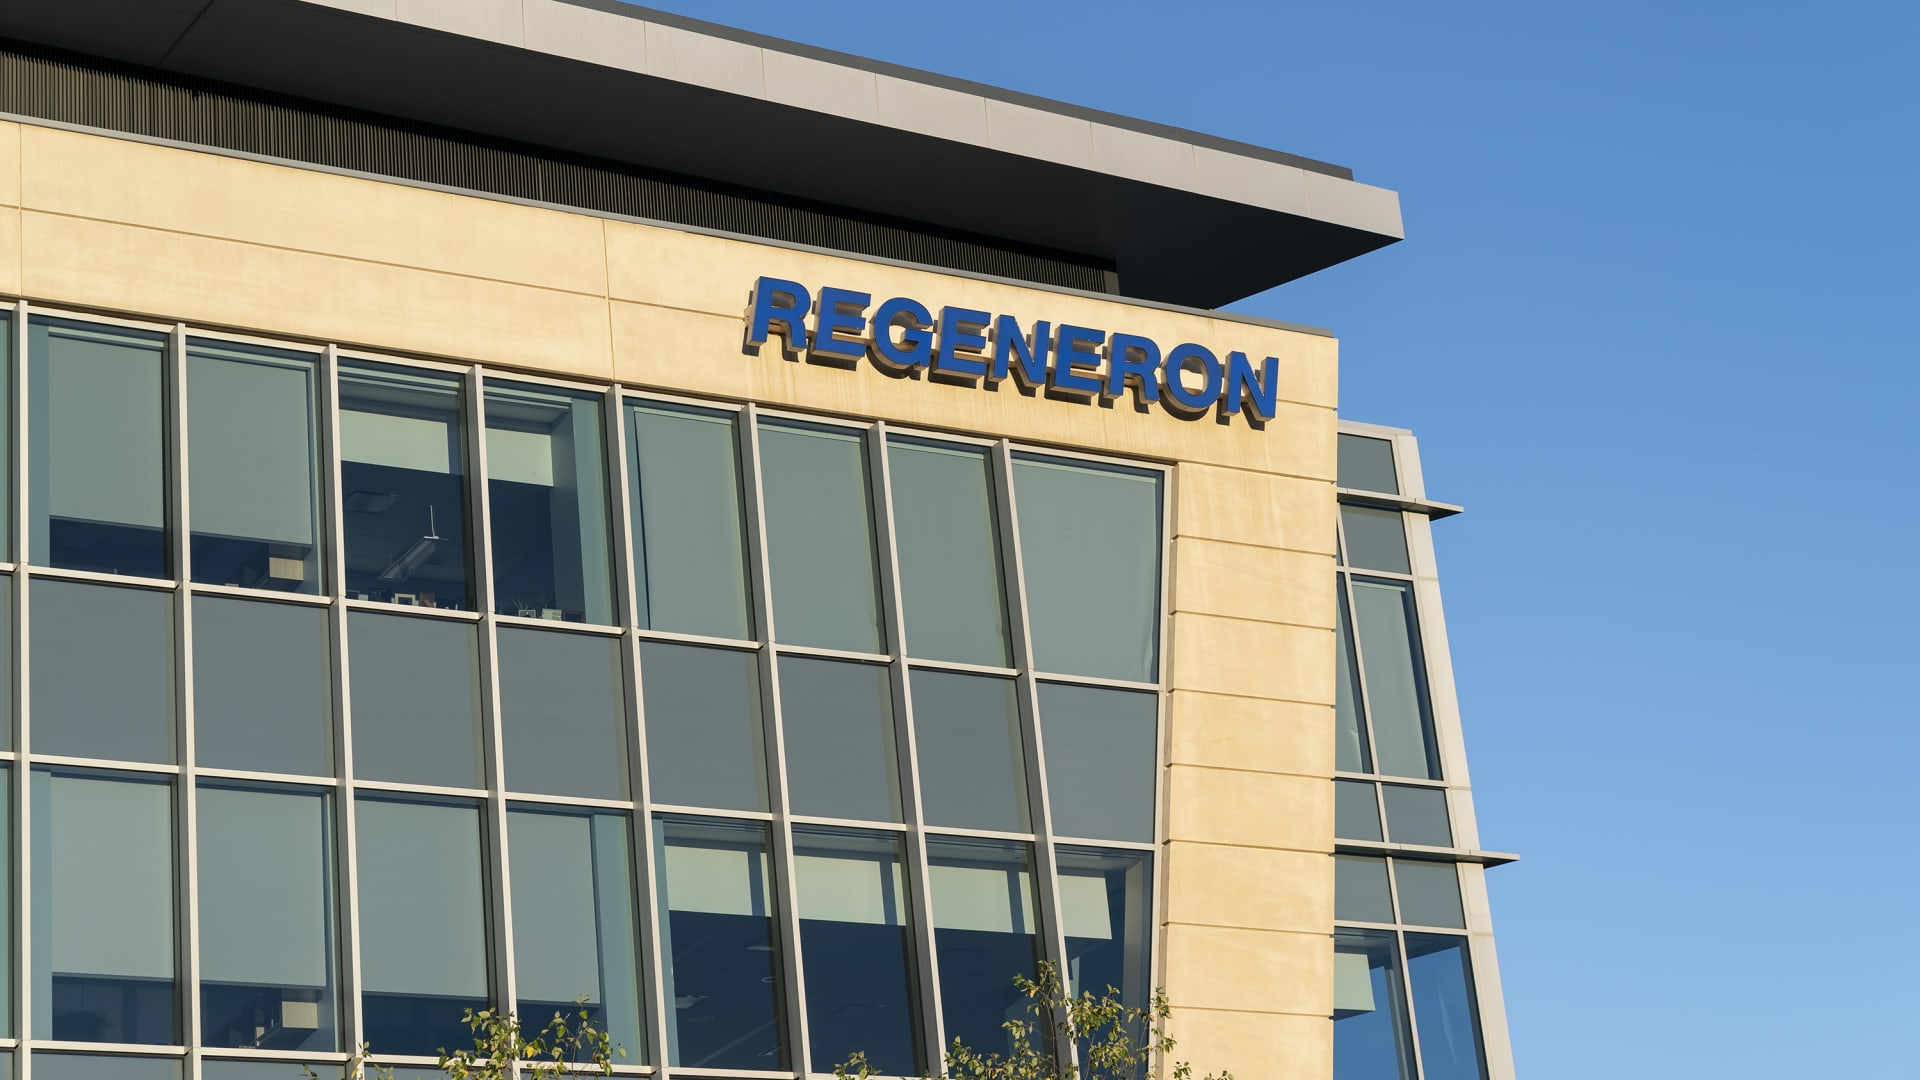 View of Corporate and Research and Development Headquarters of Regeneron Pharmaceuticals on Old Saw Mill River Road in Tarrytown, New York.